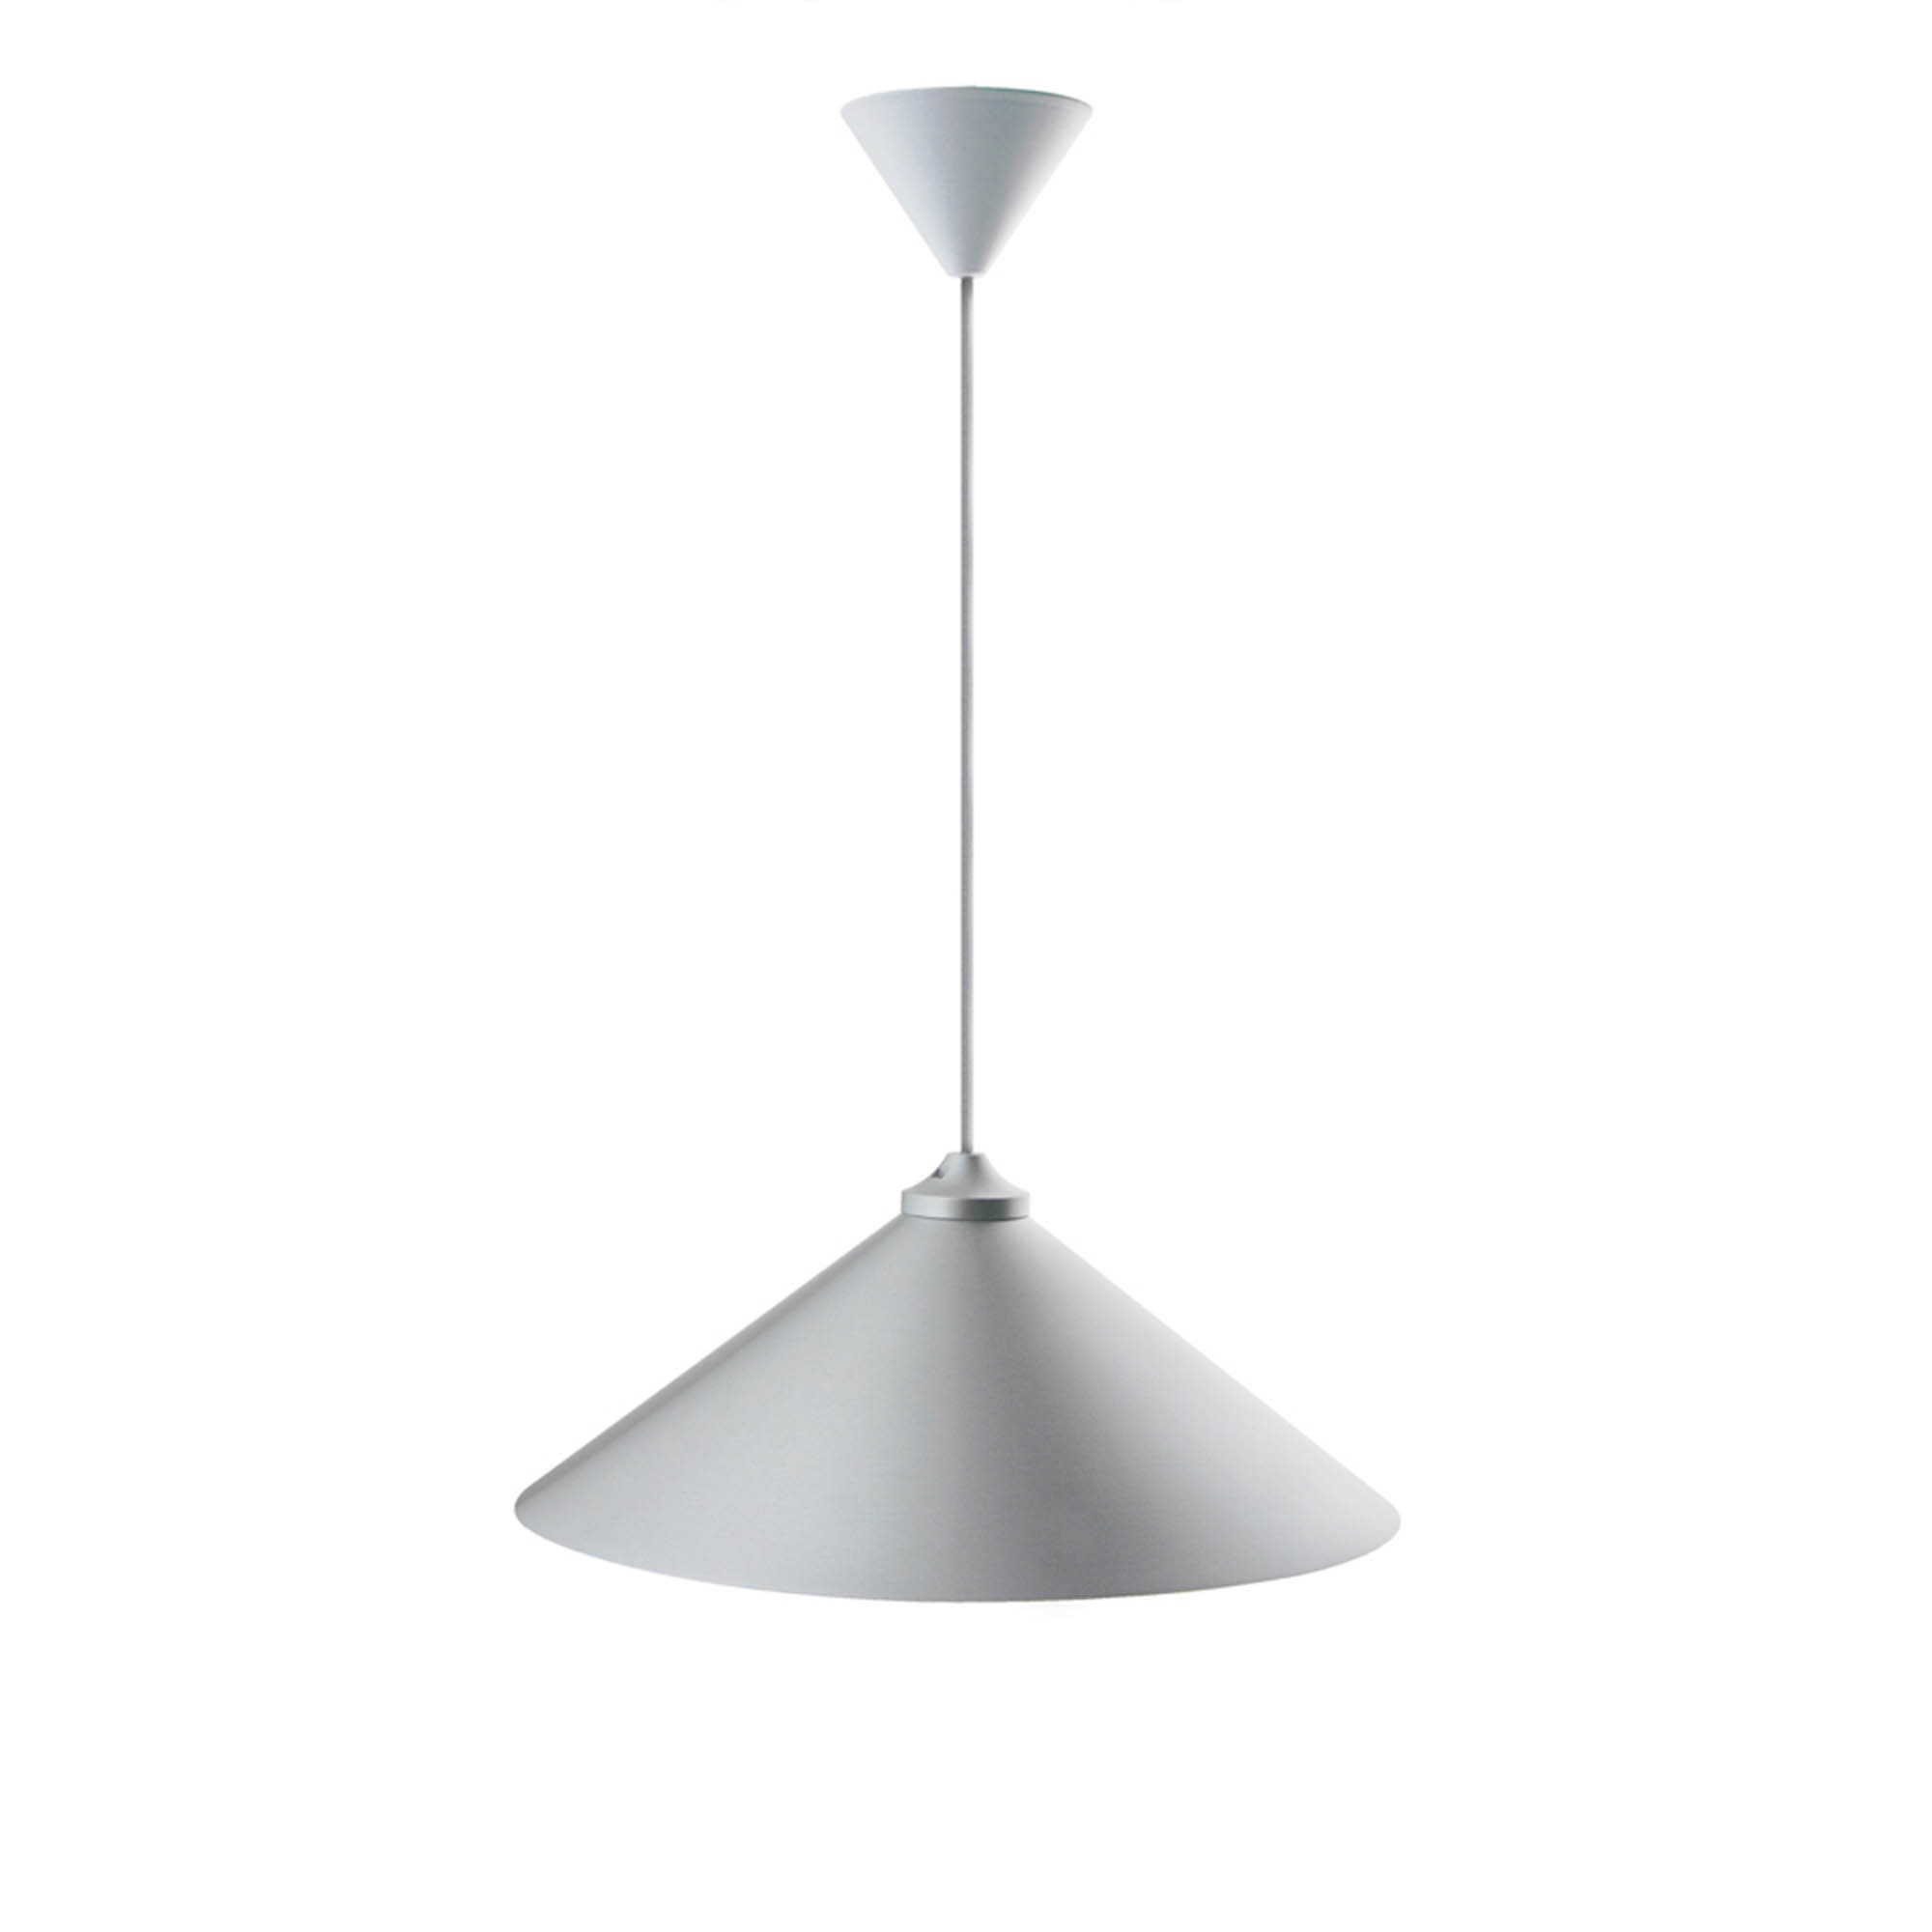 Ceiling Lights Grey : Grey ceiling light dar zar zaragoza micro